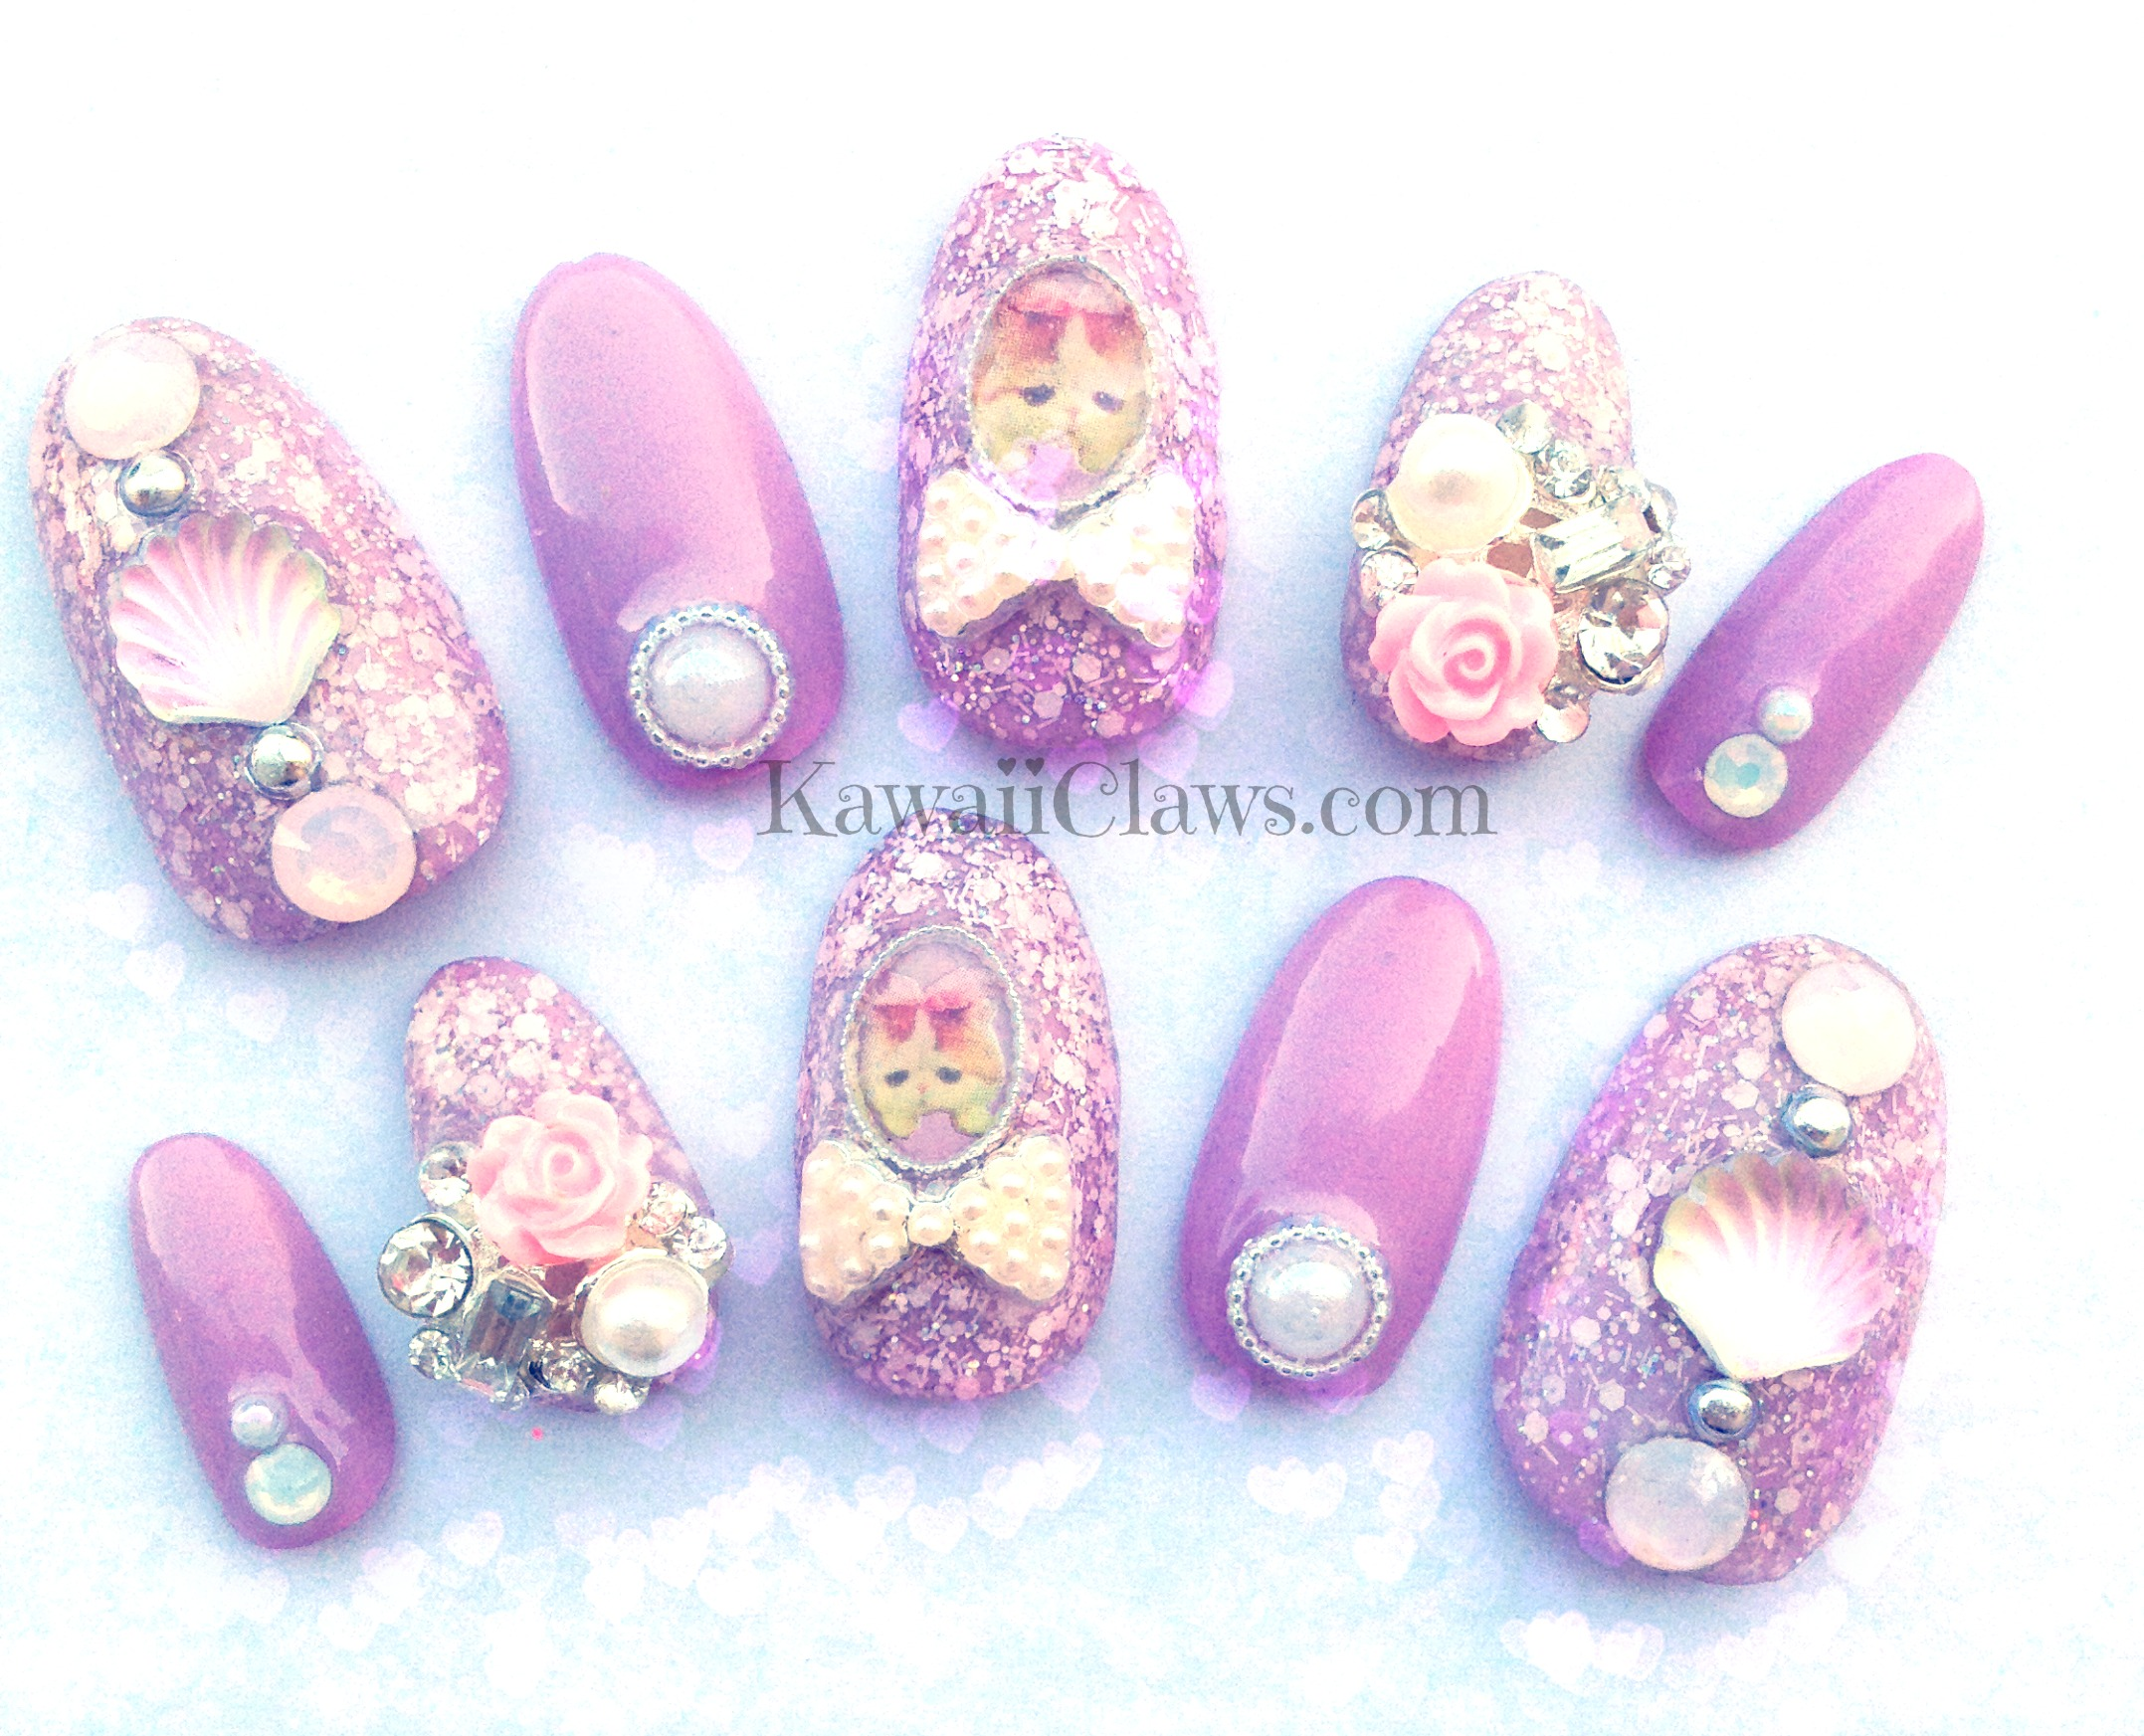 Kawaii Claws | Lavender Glitter Kitty Princess full false/fake 3D ...